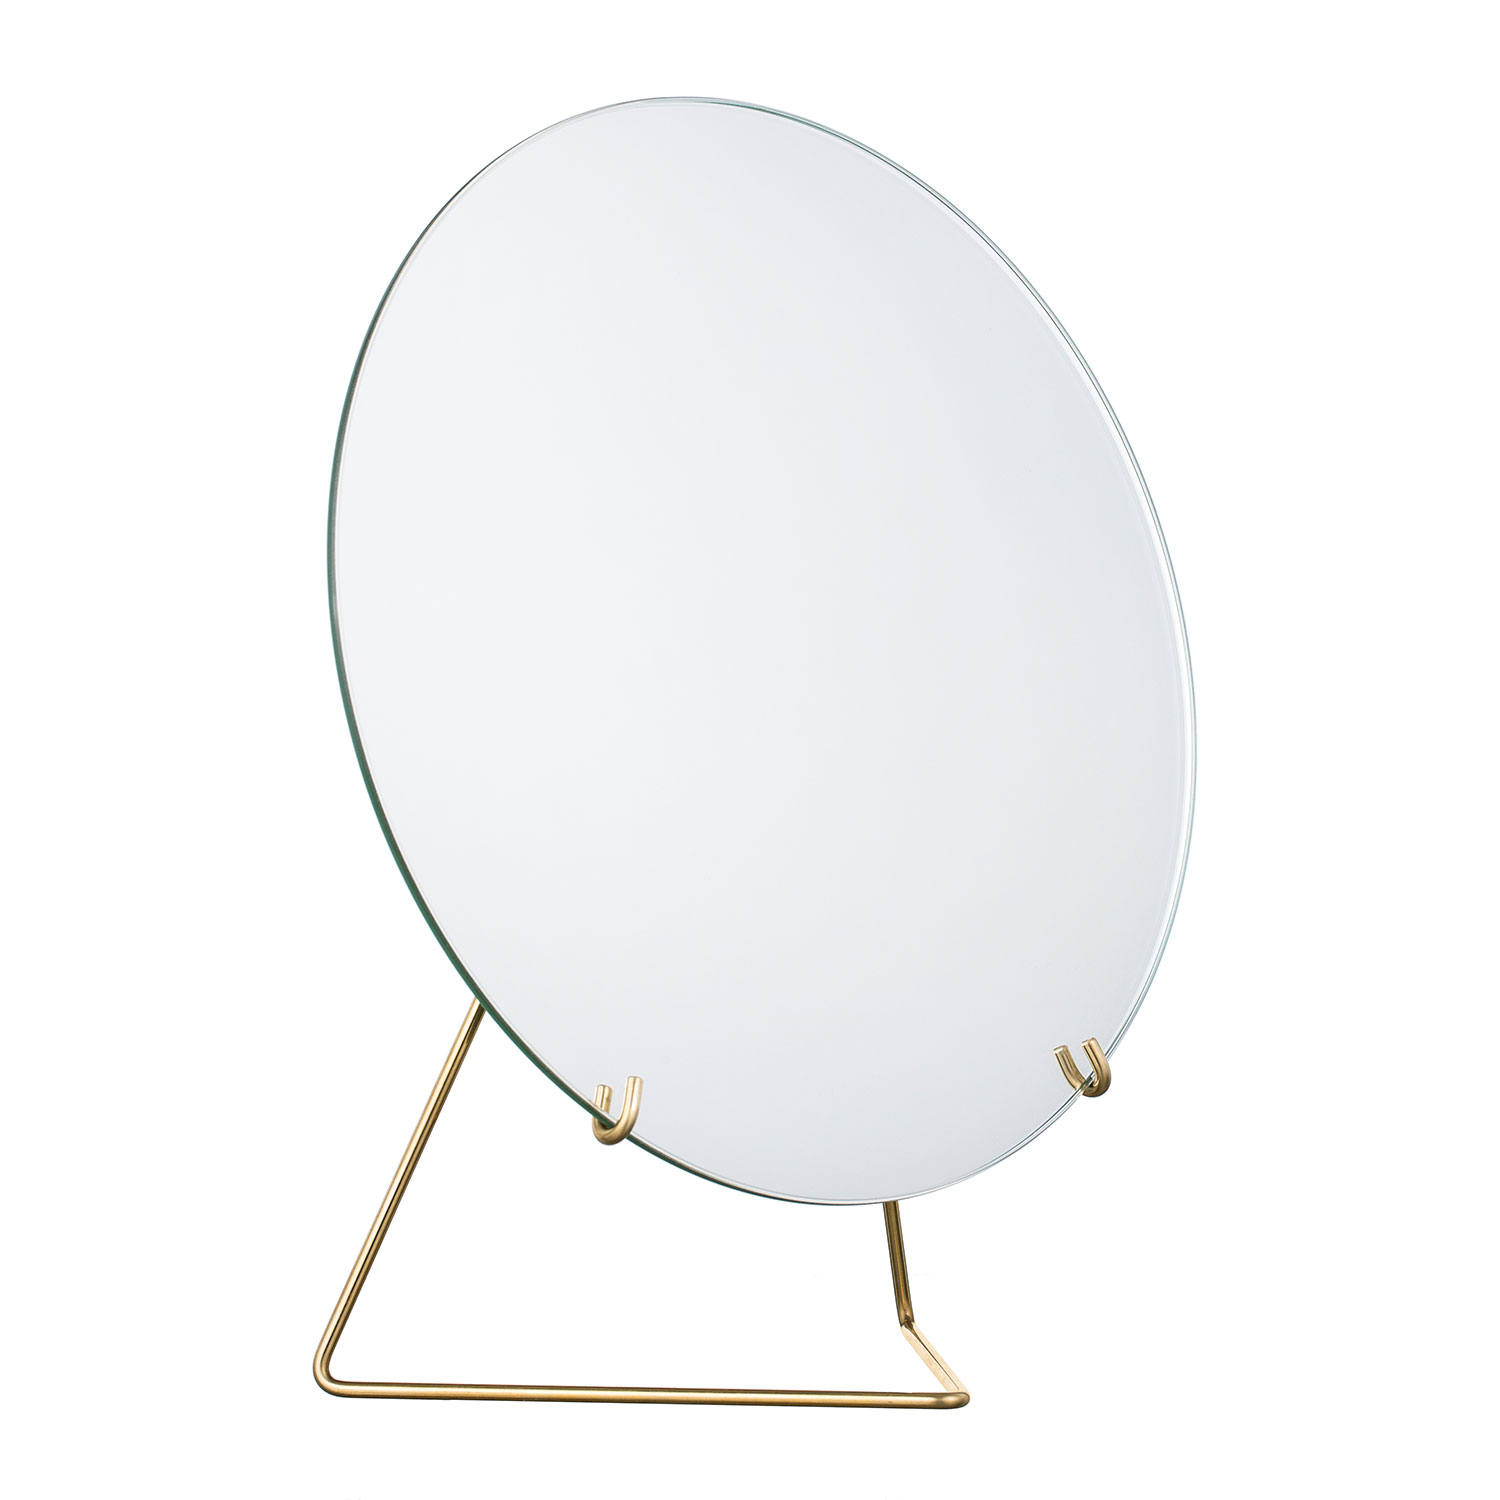 Bilde av MOEBE-Mirror Bordspeil Ø30, Messing